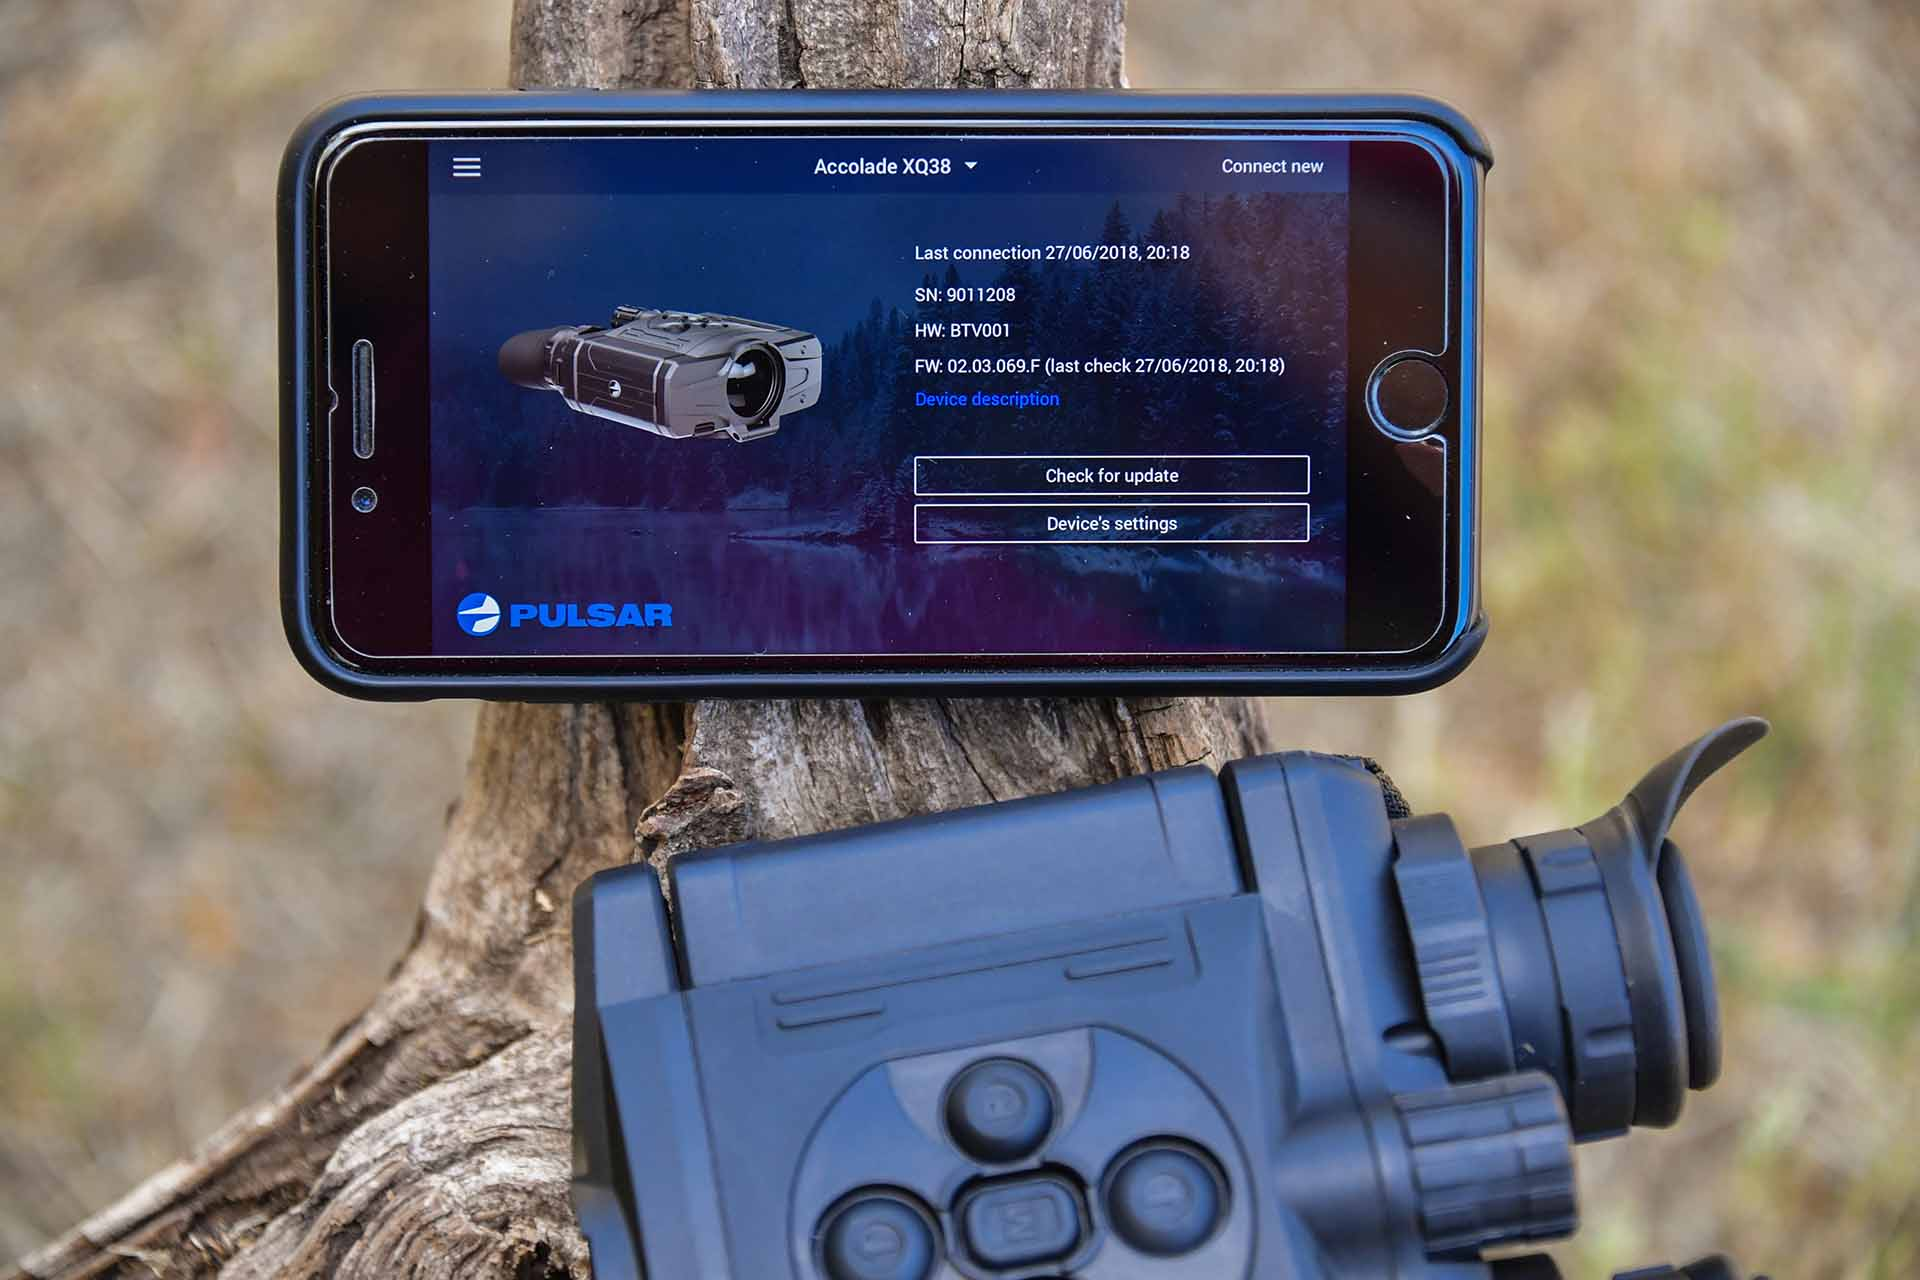 Pulsar Accolade XQ38 app for Apple iOS and Android